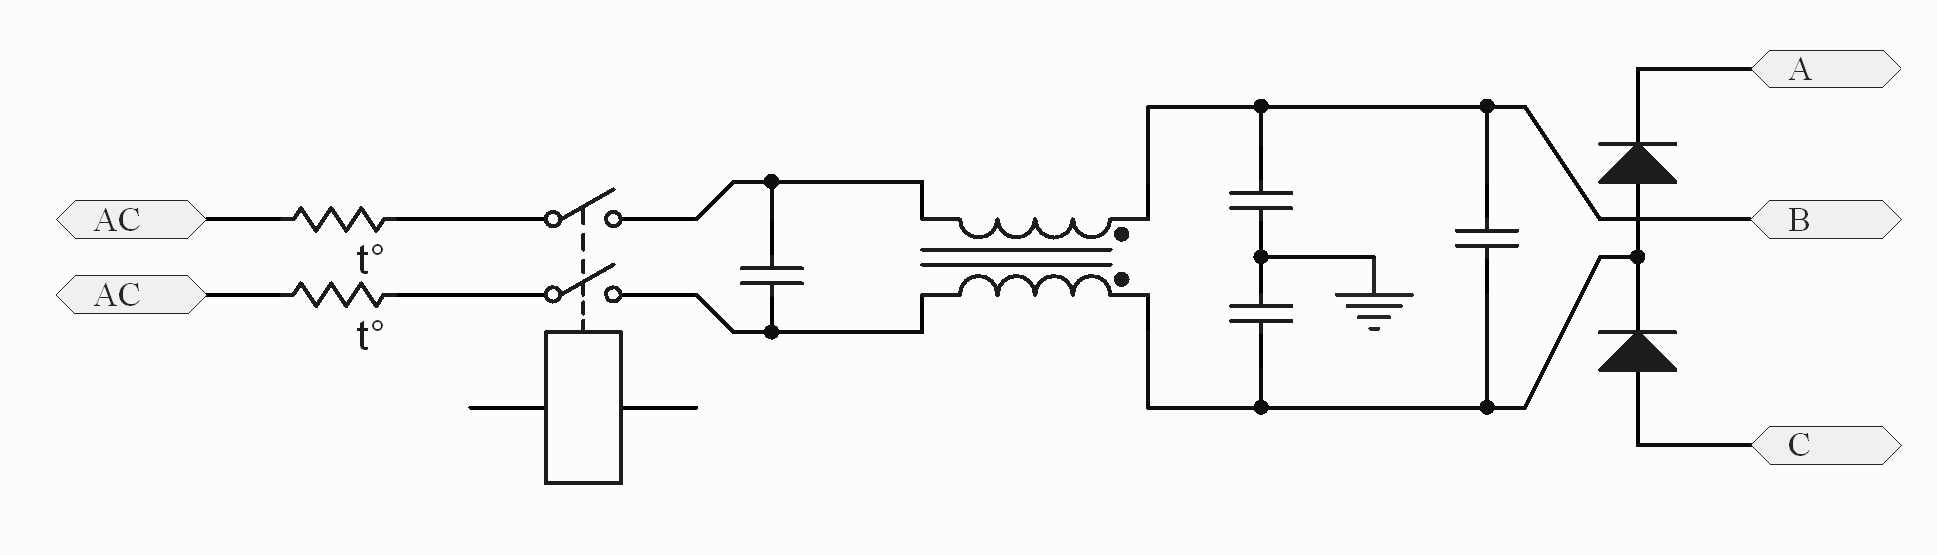 Figure J - EMI filter and voltage doubler